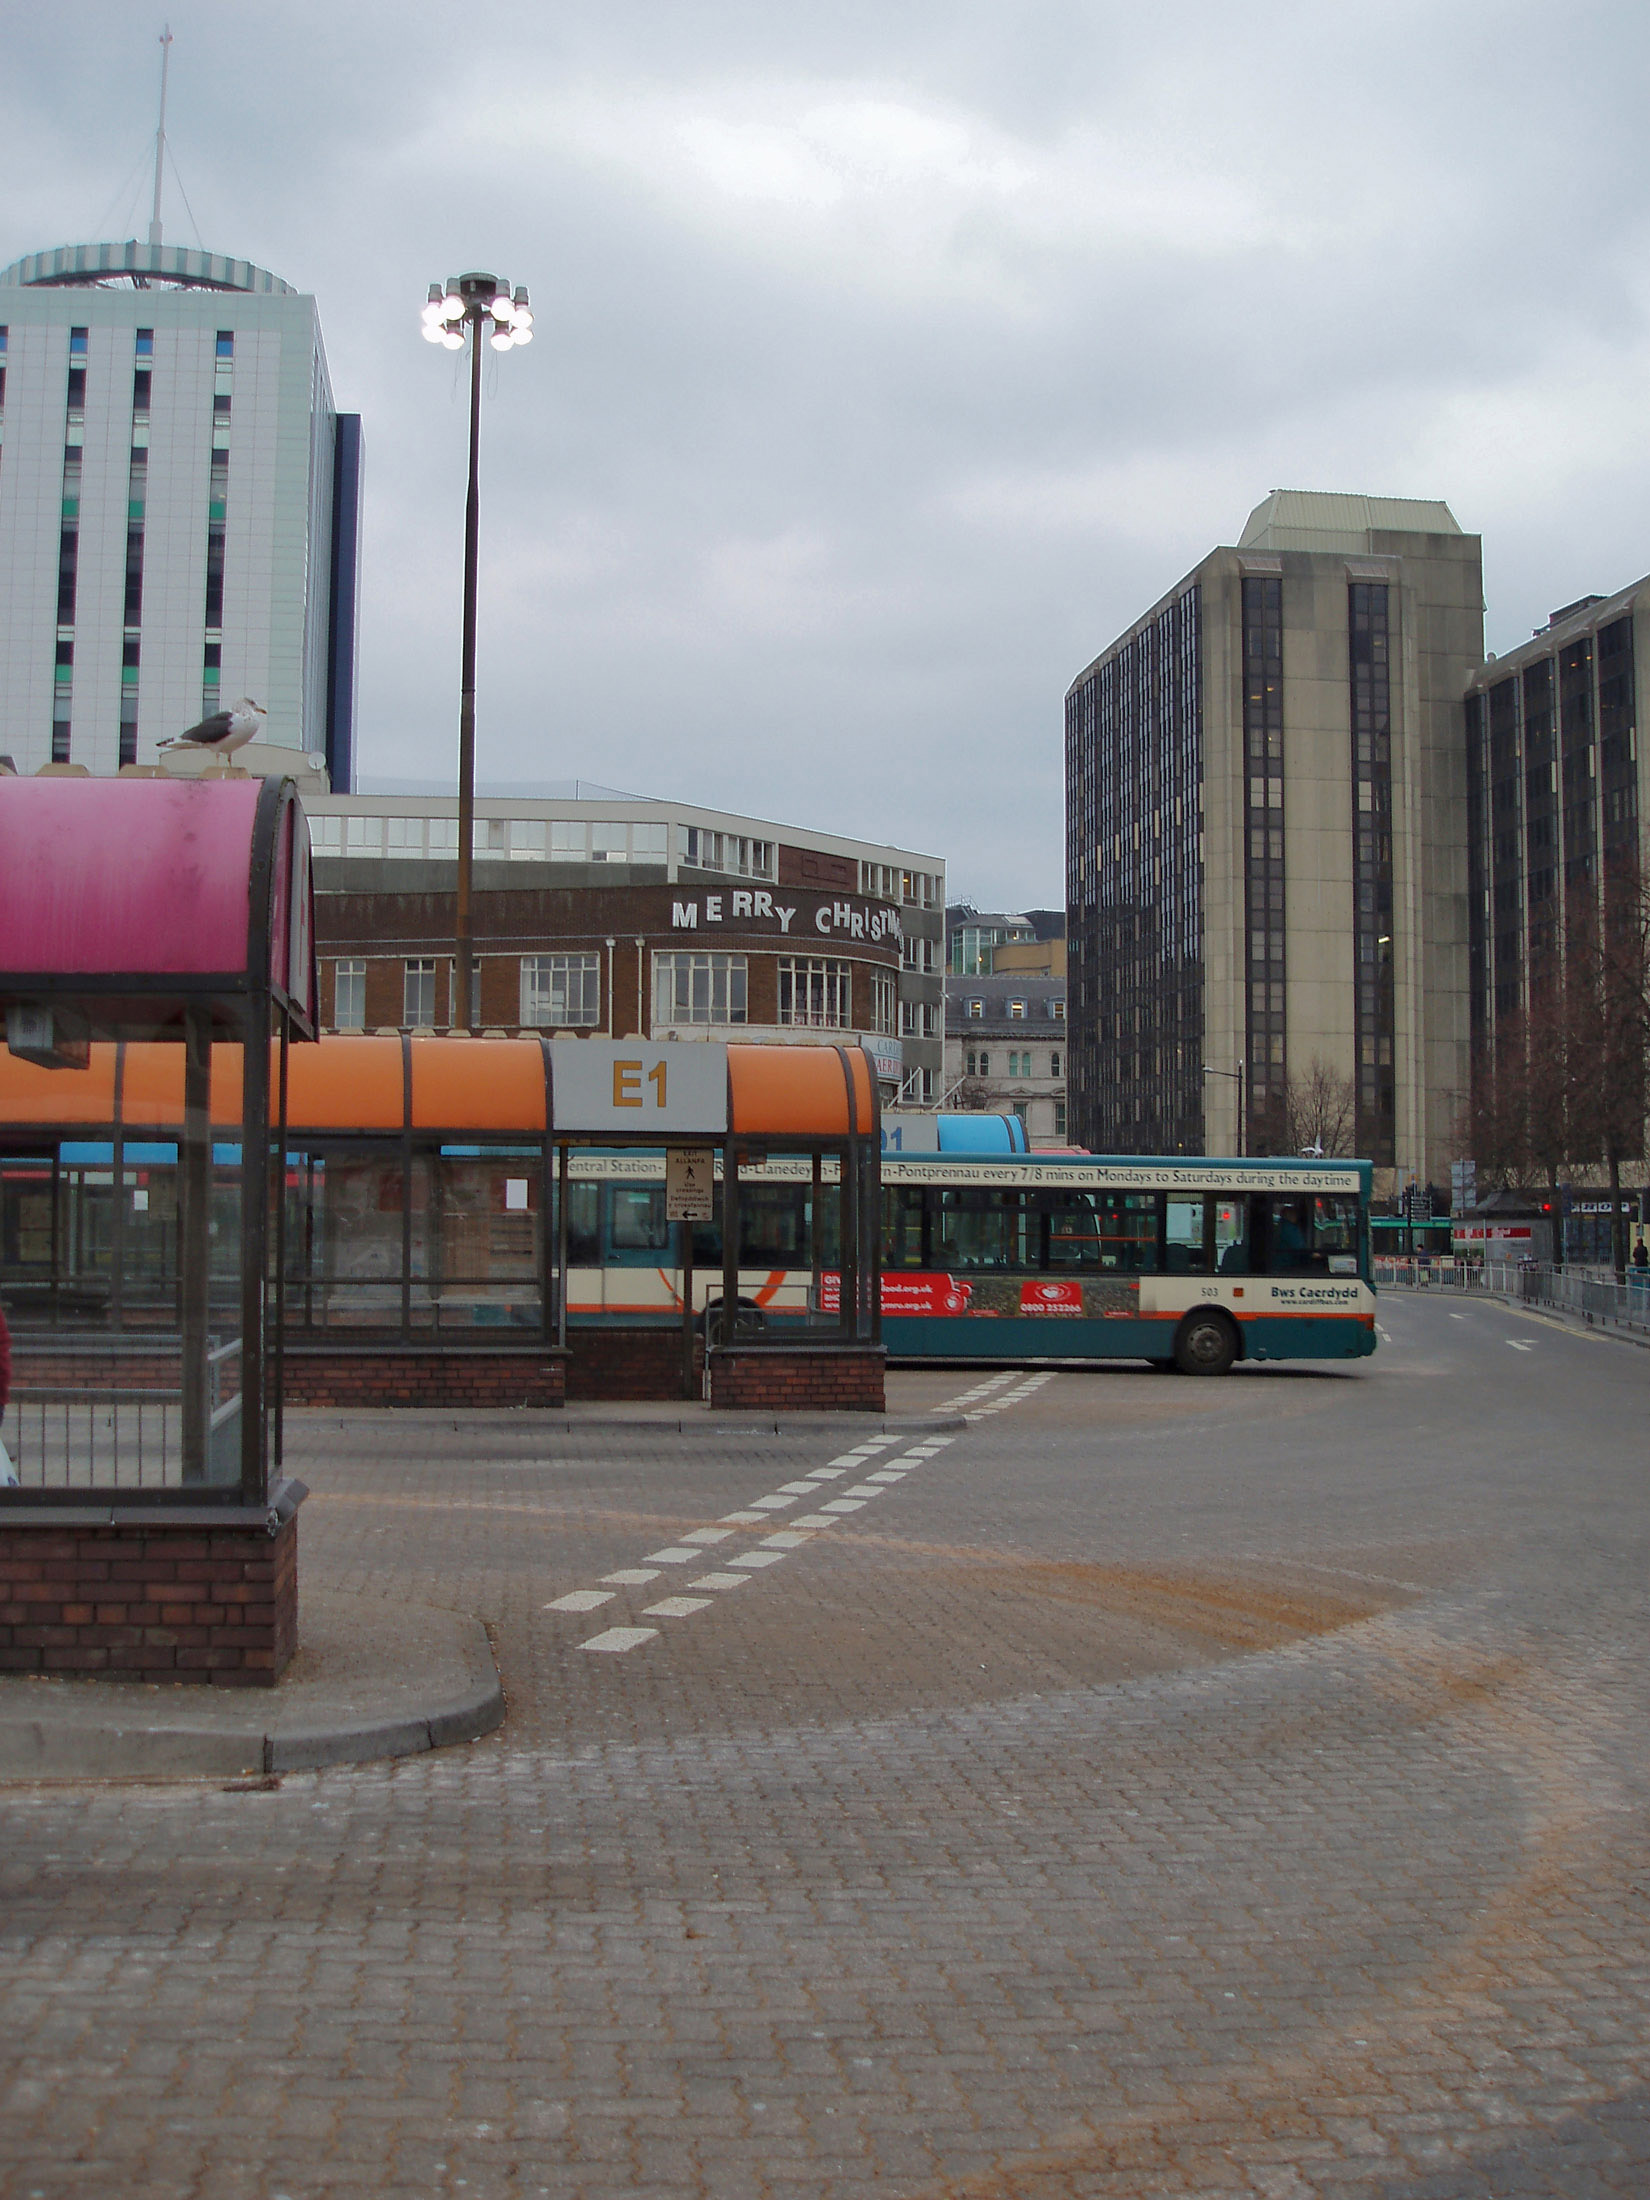 Depressing view of the Central Bus Station in Cardiff with rows of shelters and a departing bus on a dismal grey cloudy day